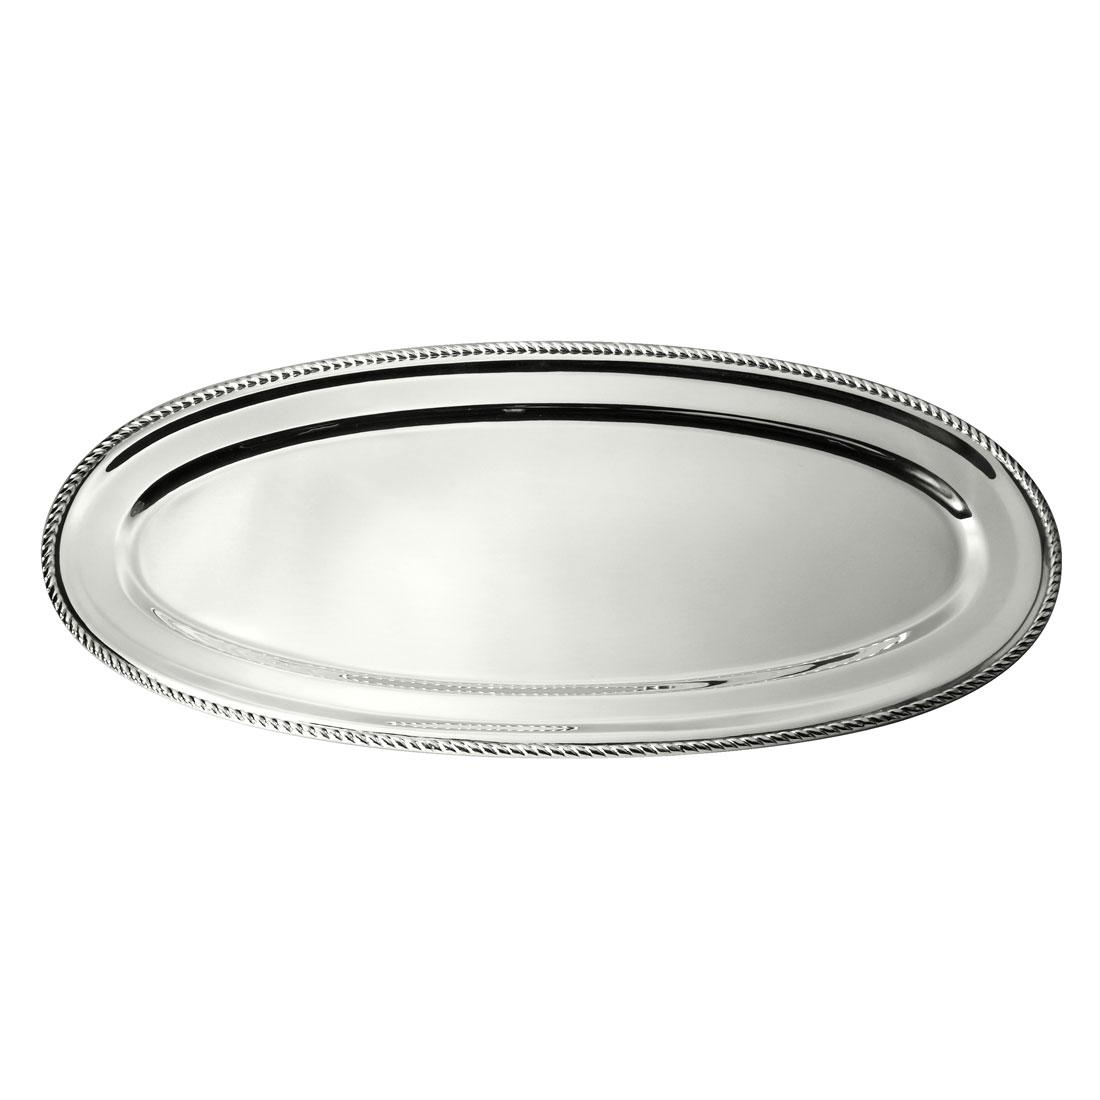 Orfevra 28 Inch Silver Plated Fish Platter